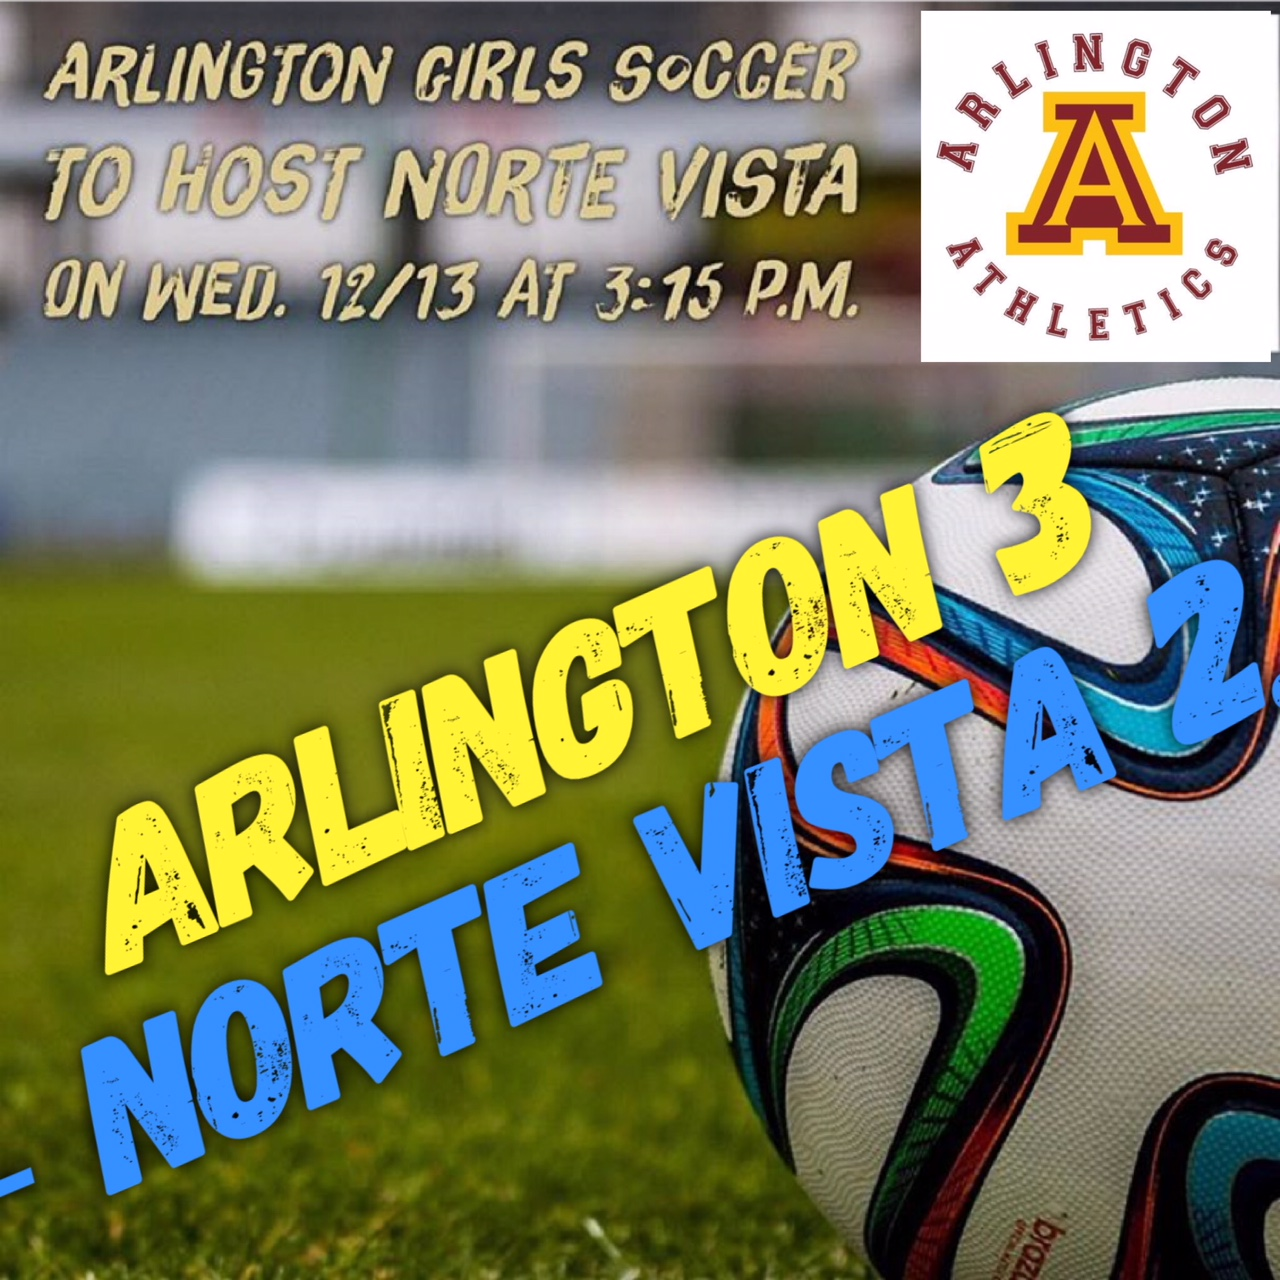 Arlington Girls' Soccer downs Norte Vista, 3-2, on Wednesday, 12/13.